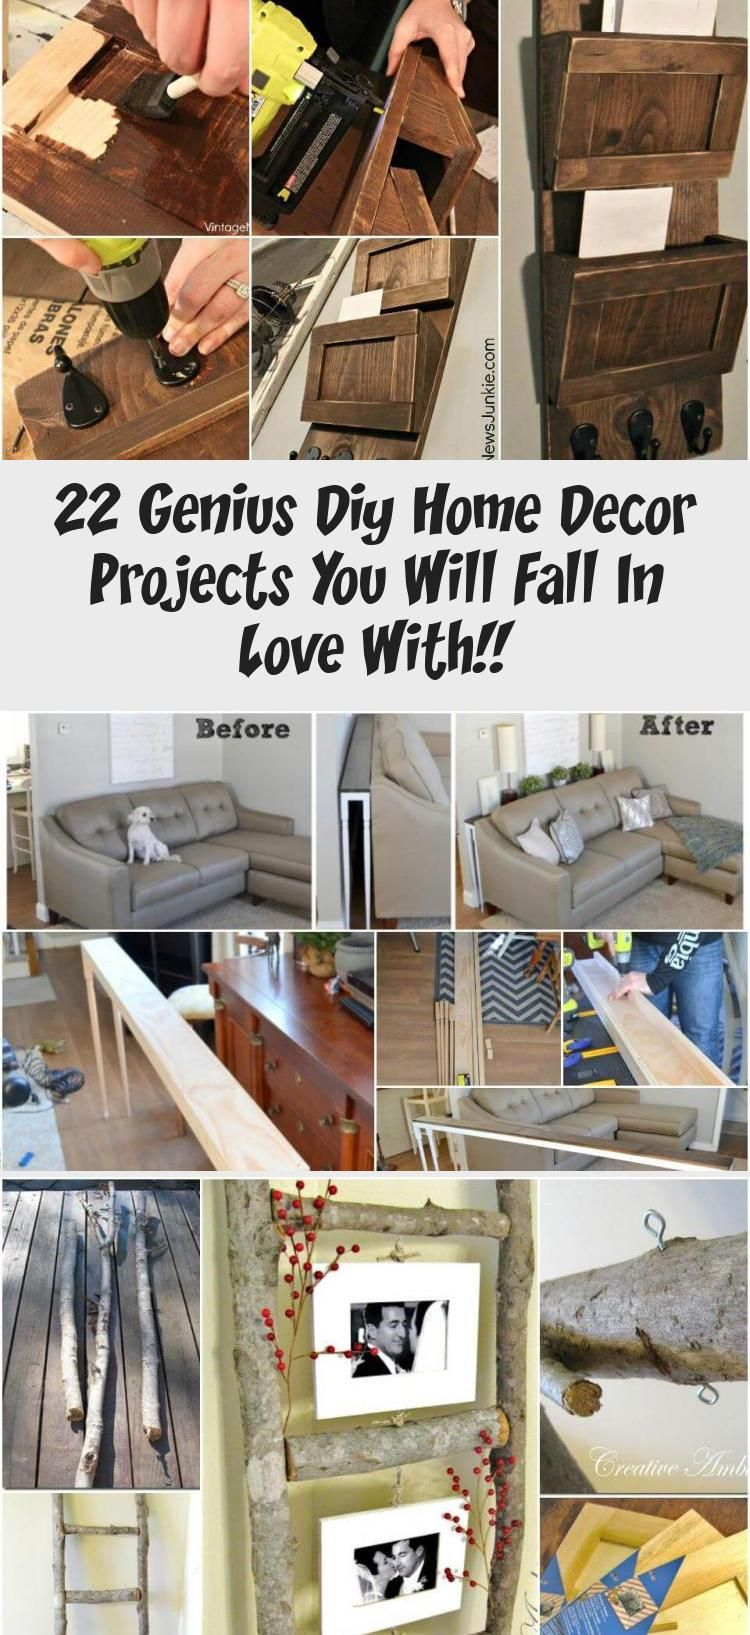 17 Genius Diy Home Decor Projects You Will Fall In Love With  Diy